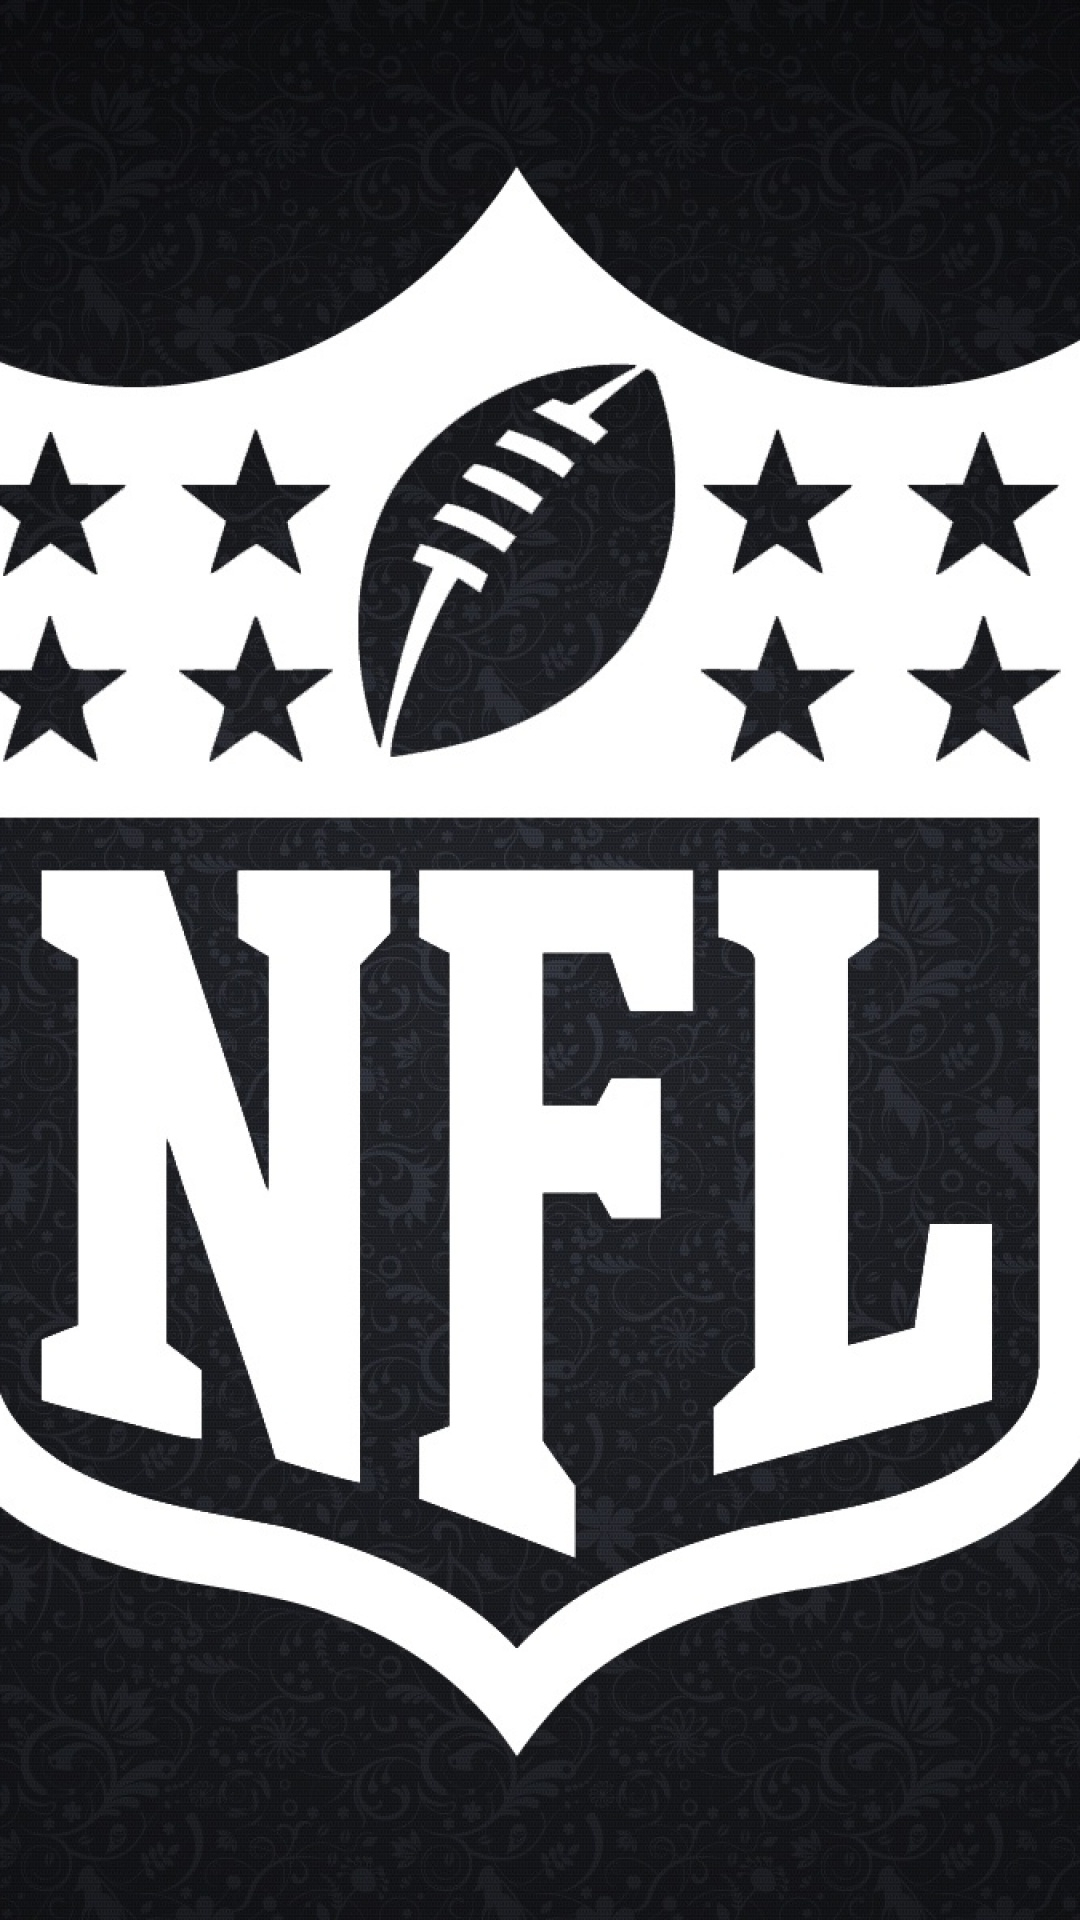 Title Nfl Wallpapers Iphone 6 Impremedia Dimension 1080 X 1920 File Type JPG JPEG